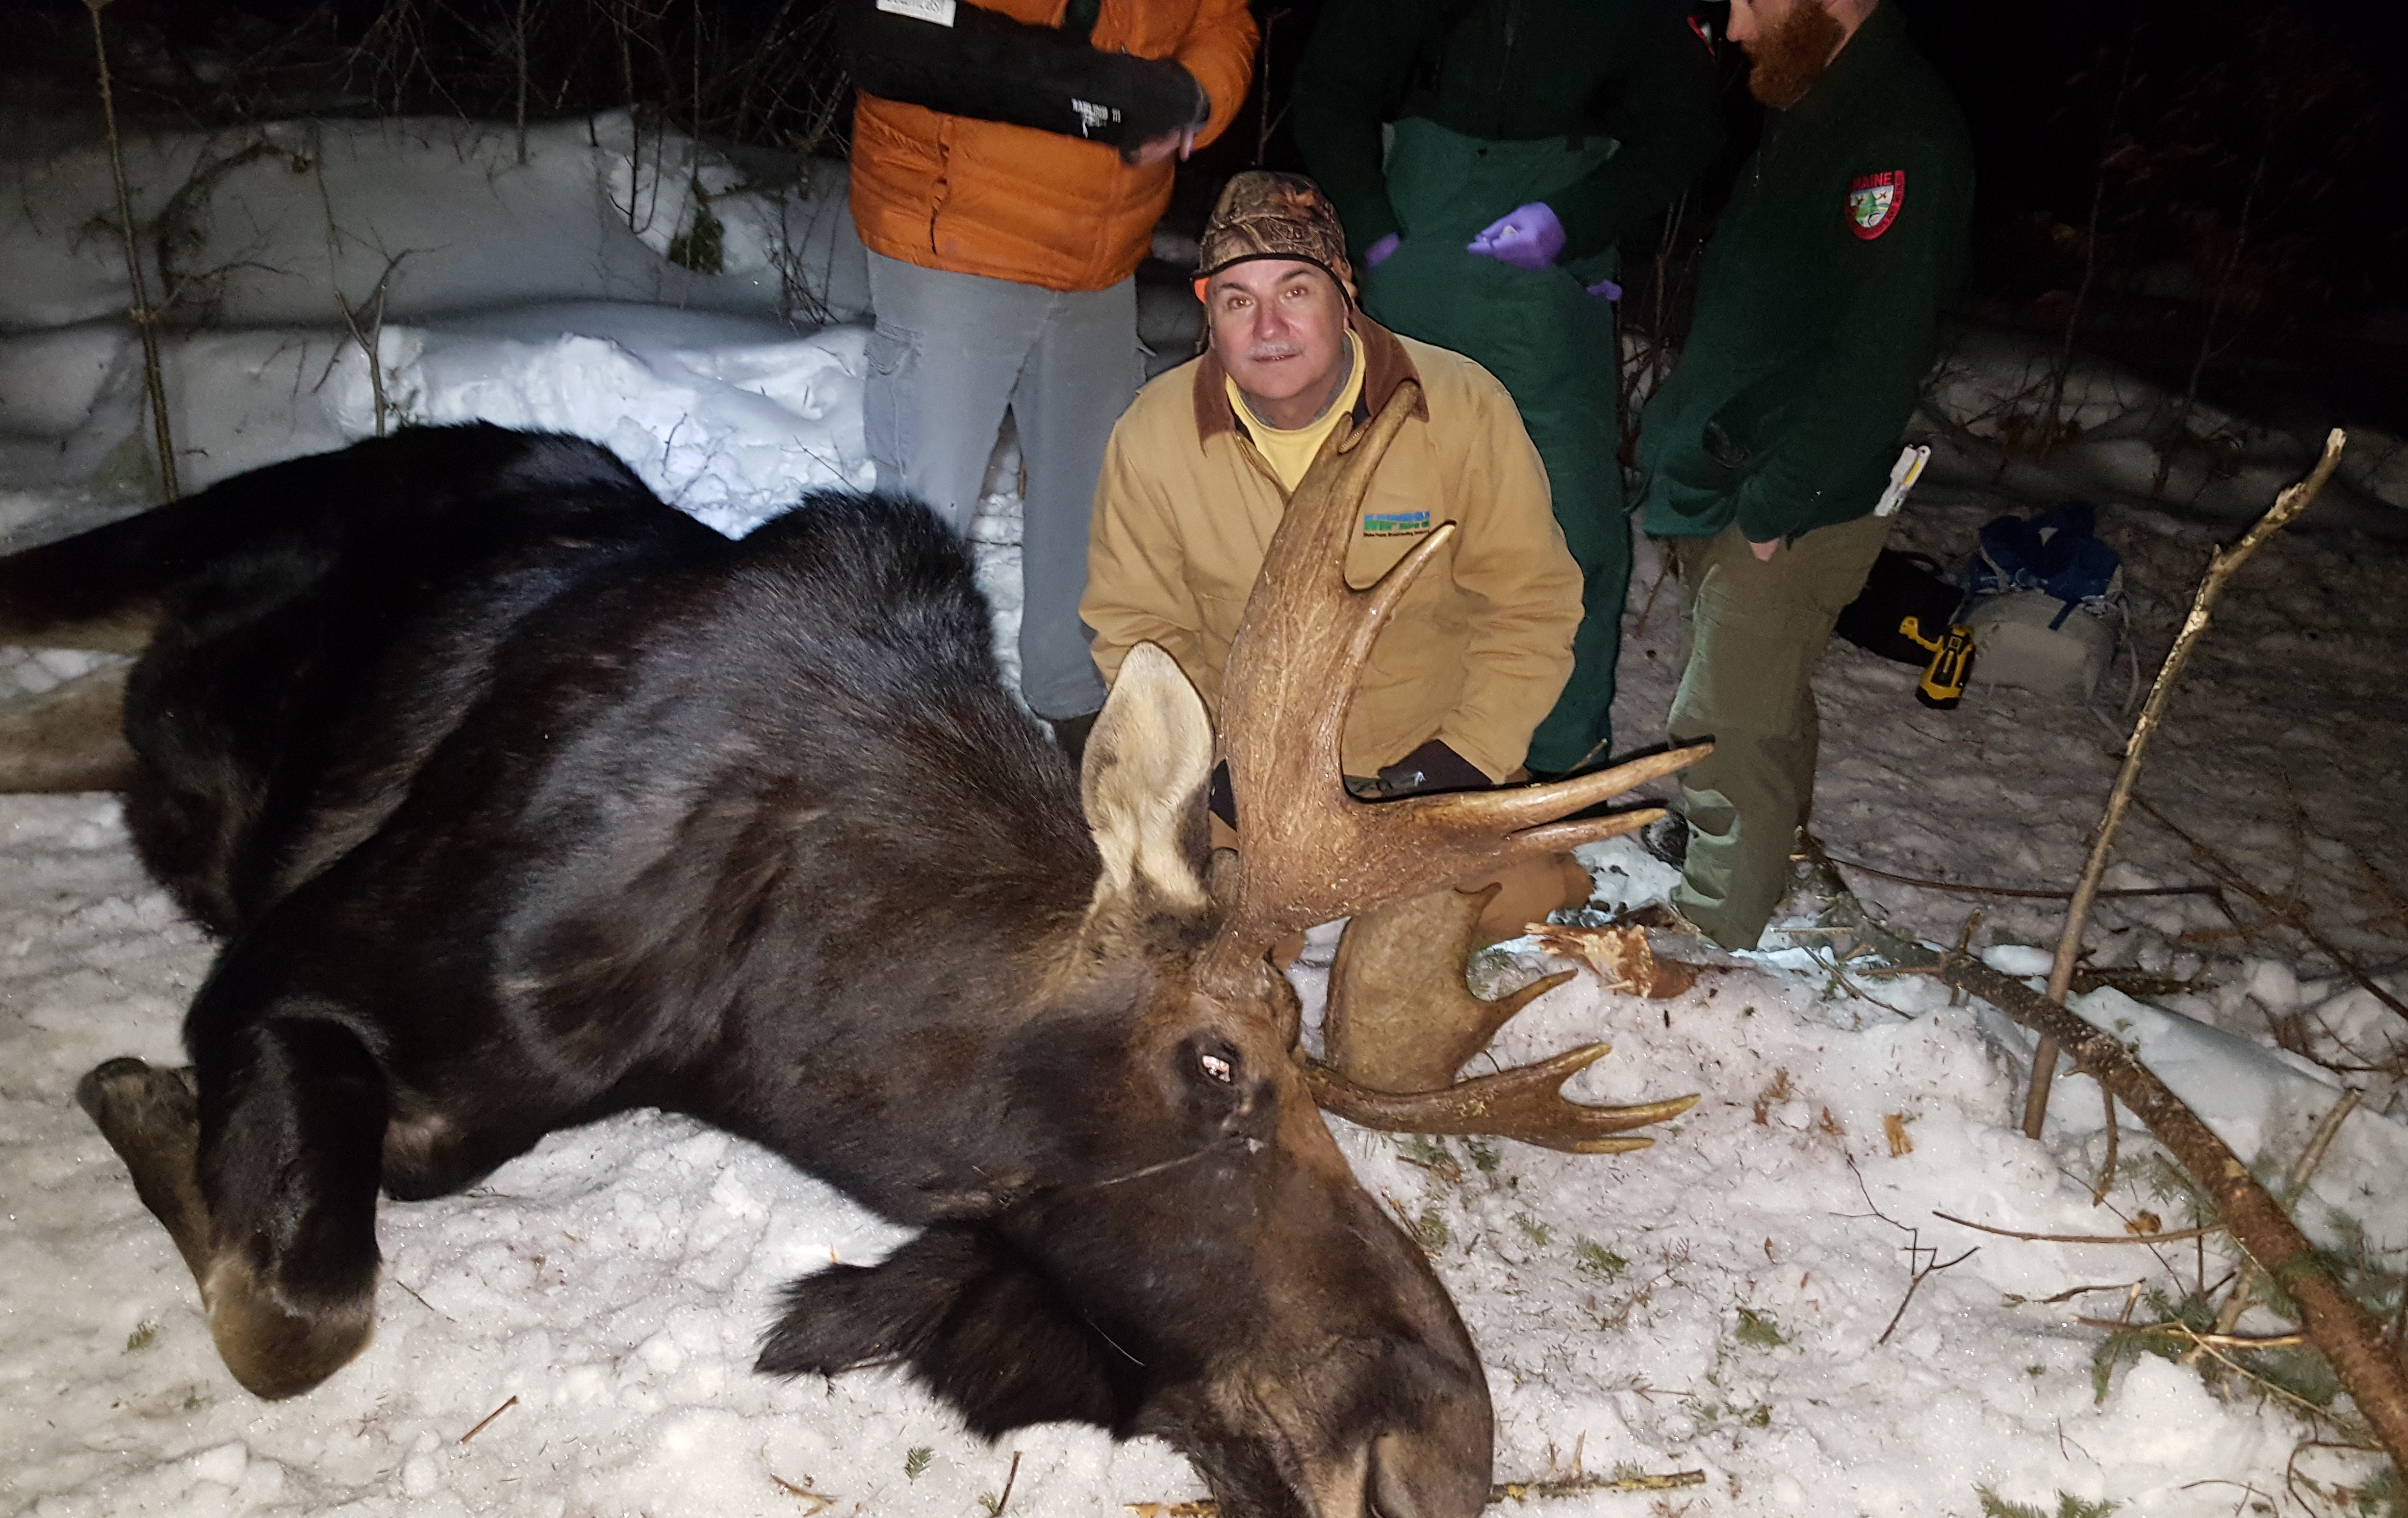 Mahaney poses for a photograph with the tranquilized moose. (Photo: Maine Public)